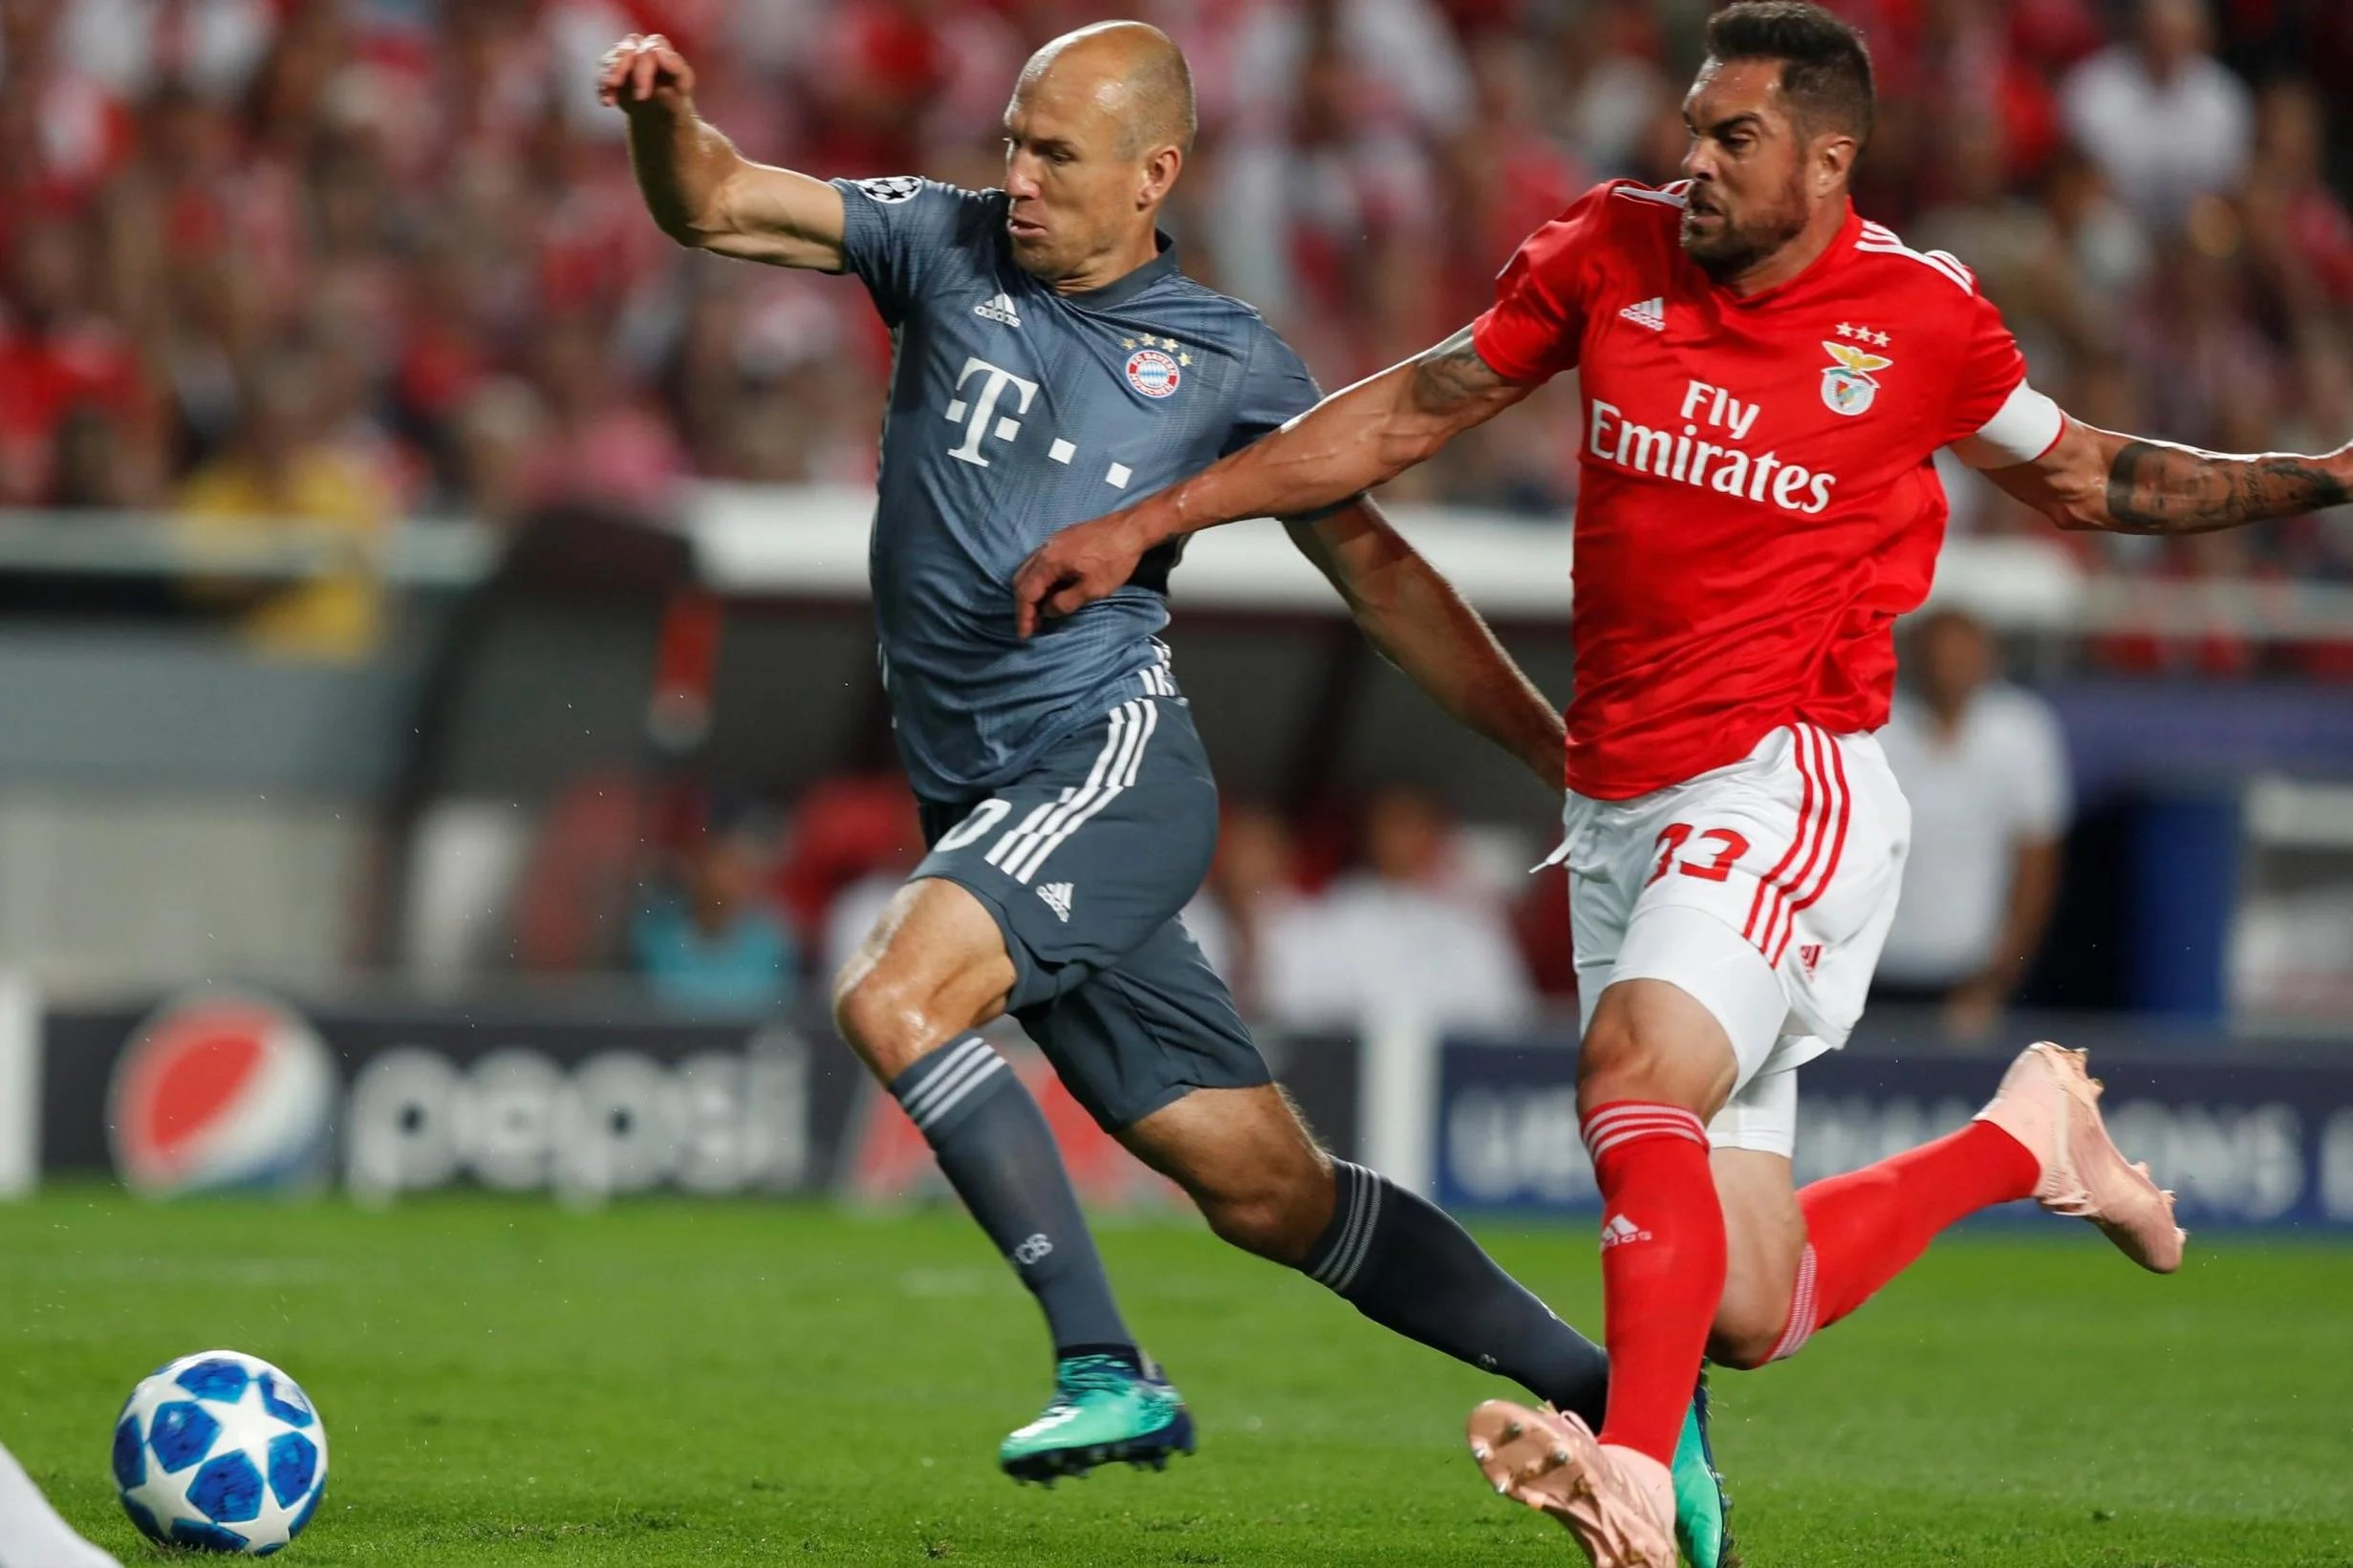 Benfica Vs Bayern, Live Stream Online Uefa Champions